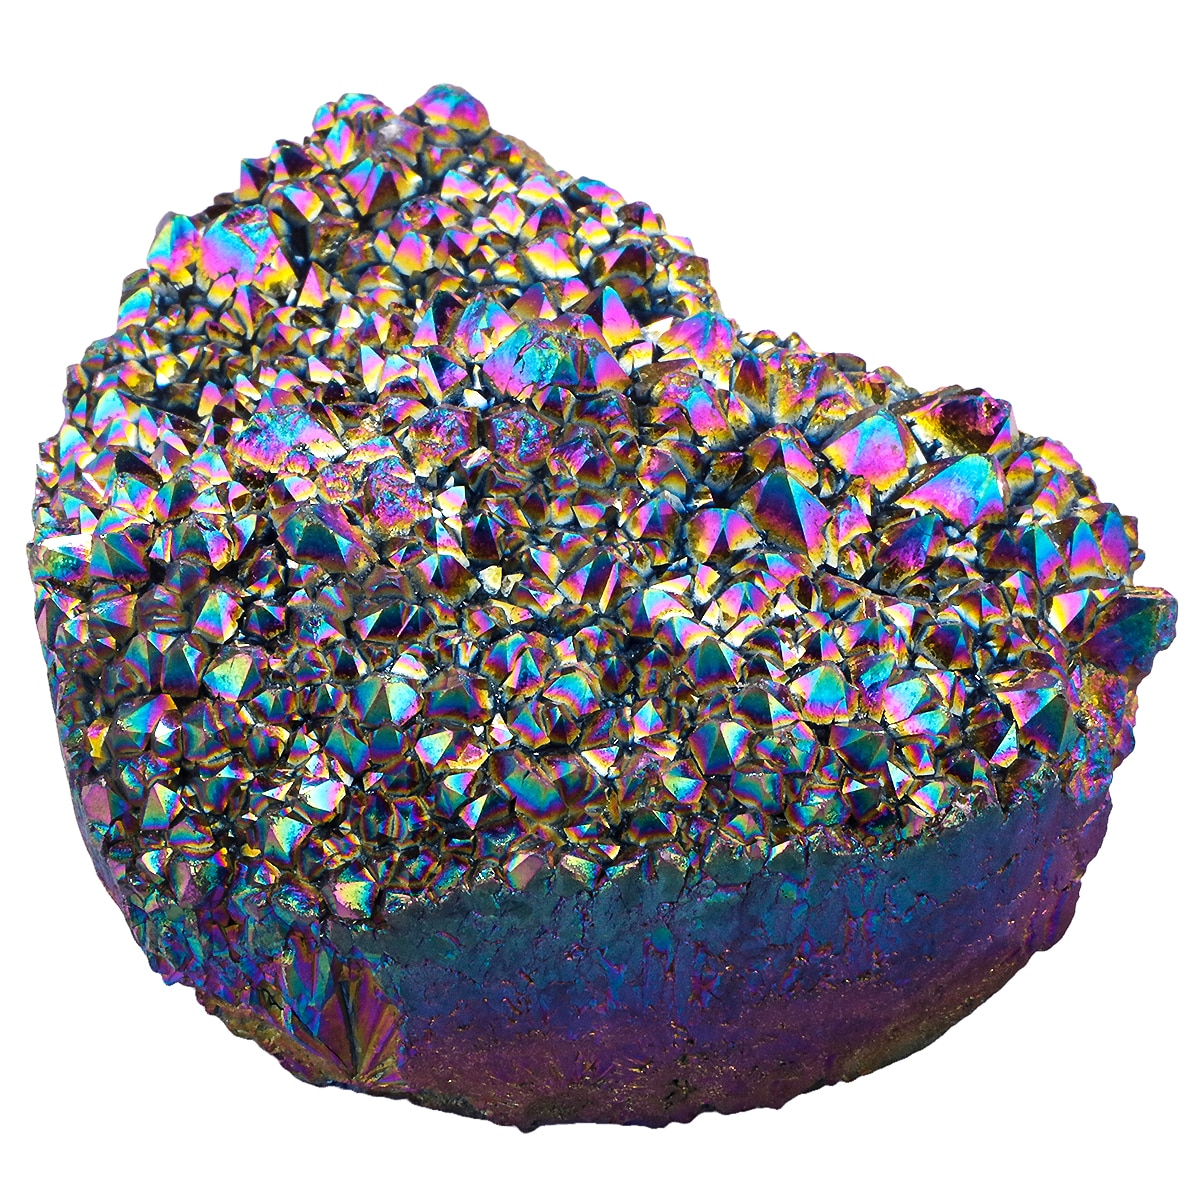 TUMBEELLUWA Rainbow Titanium Coated Natural Crystal Quartz Cluster Geode Heart Shape Stone Figurine for Reiki Healing Home Decor недорого